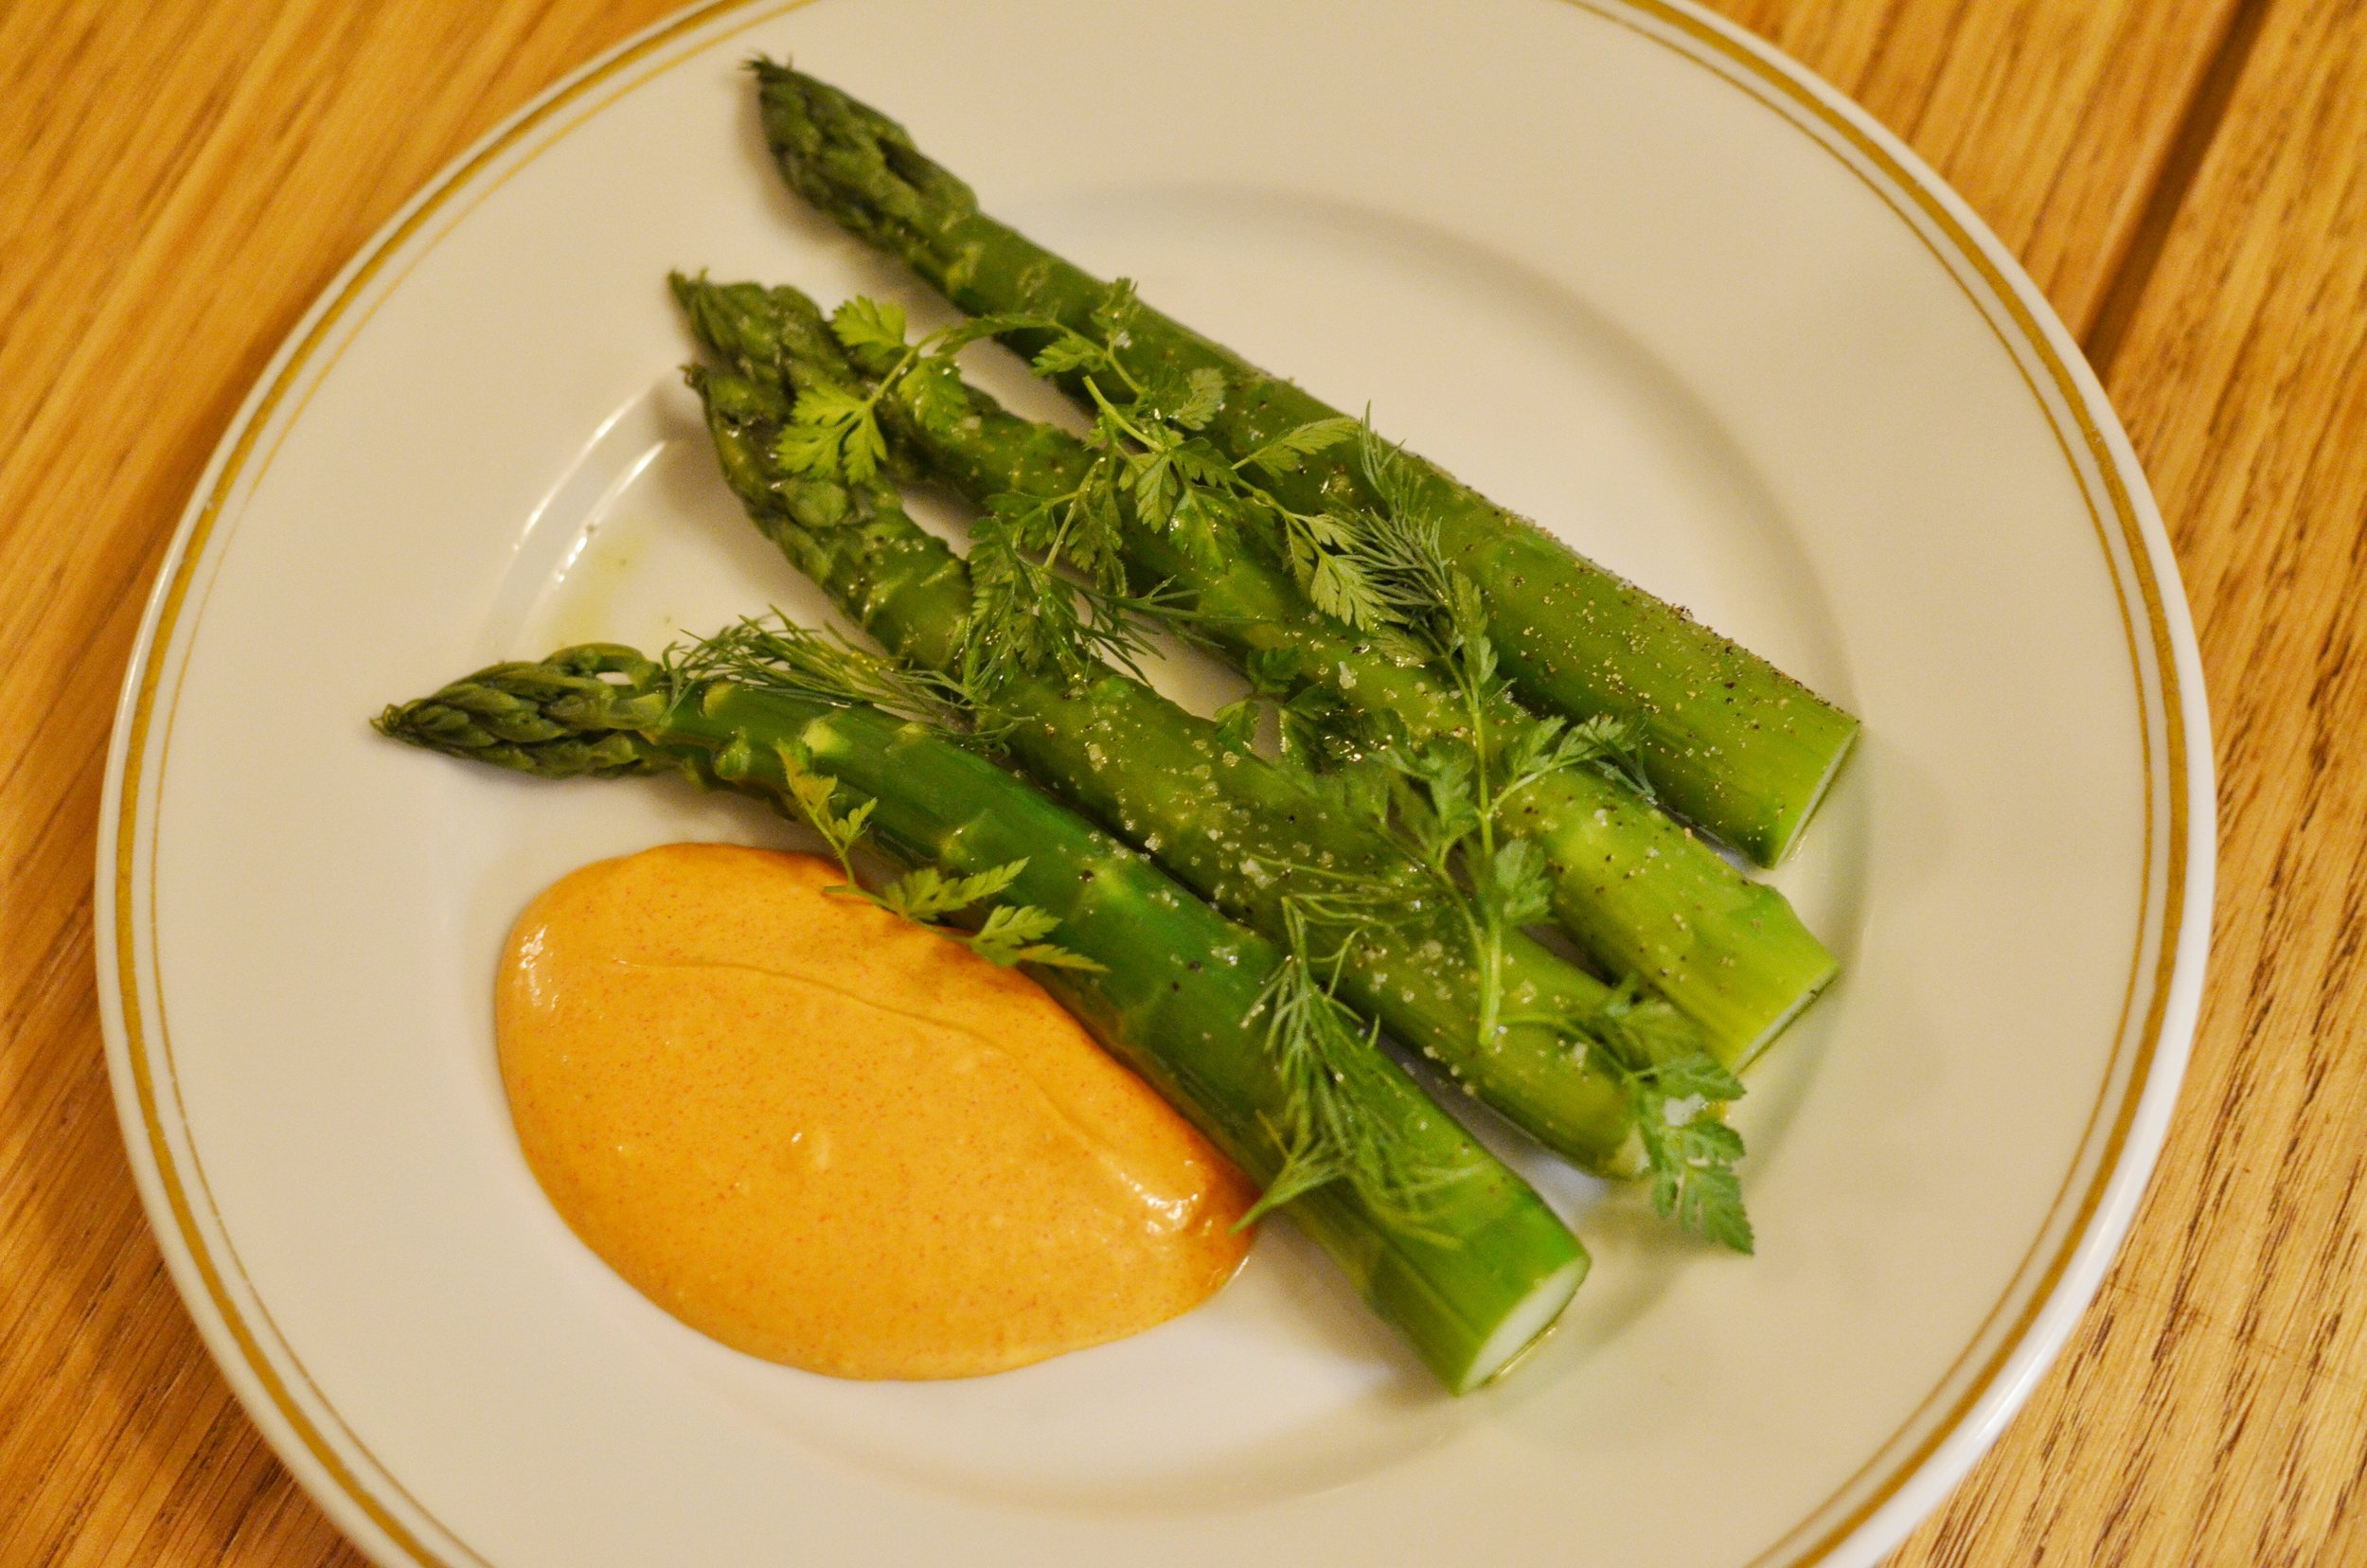 Asparagus with pepper sauce- Asparagus was in season when we were in Paris so we had many versions of it. This was one of my favorite versions! The asparagus was cooked in olive oil and drizzled with fleur de sel with a side of pepper sauce. Very simply yet amazing.